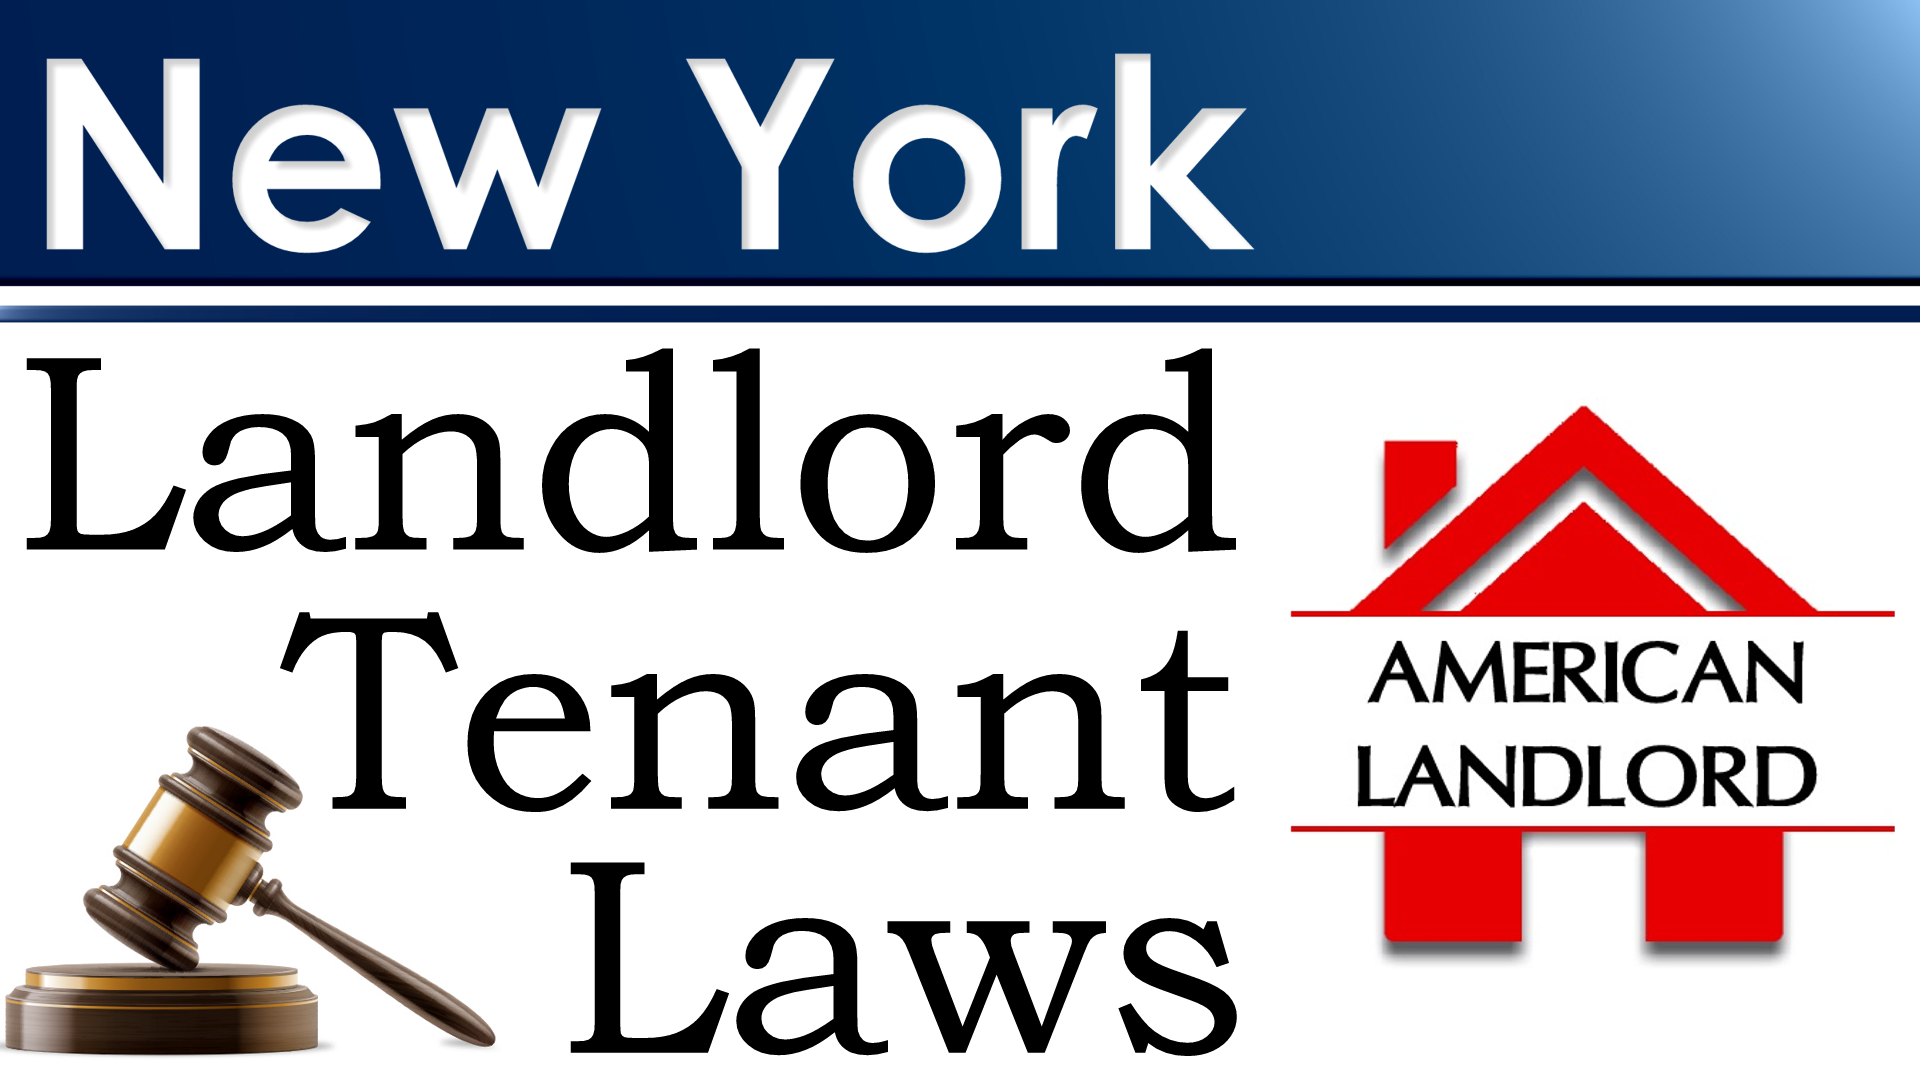 New York landlord tenant law